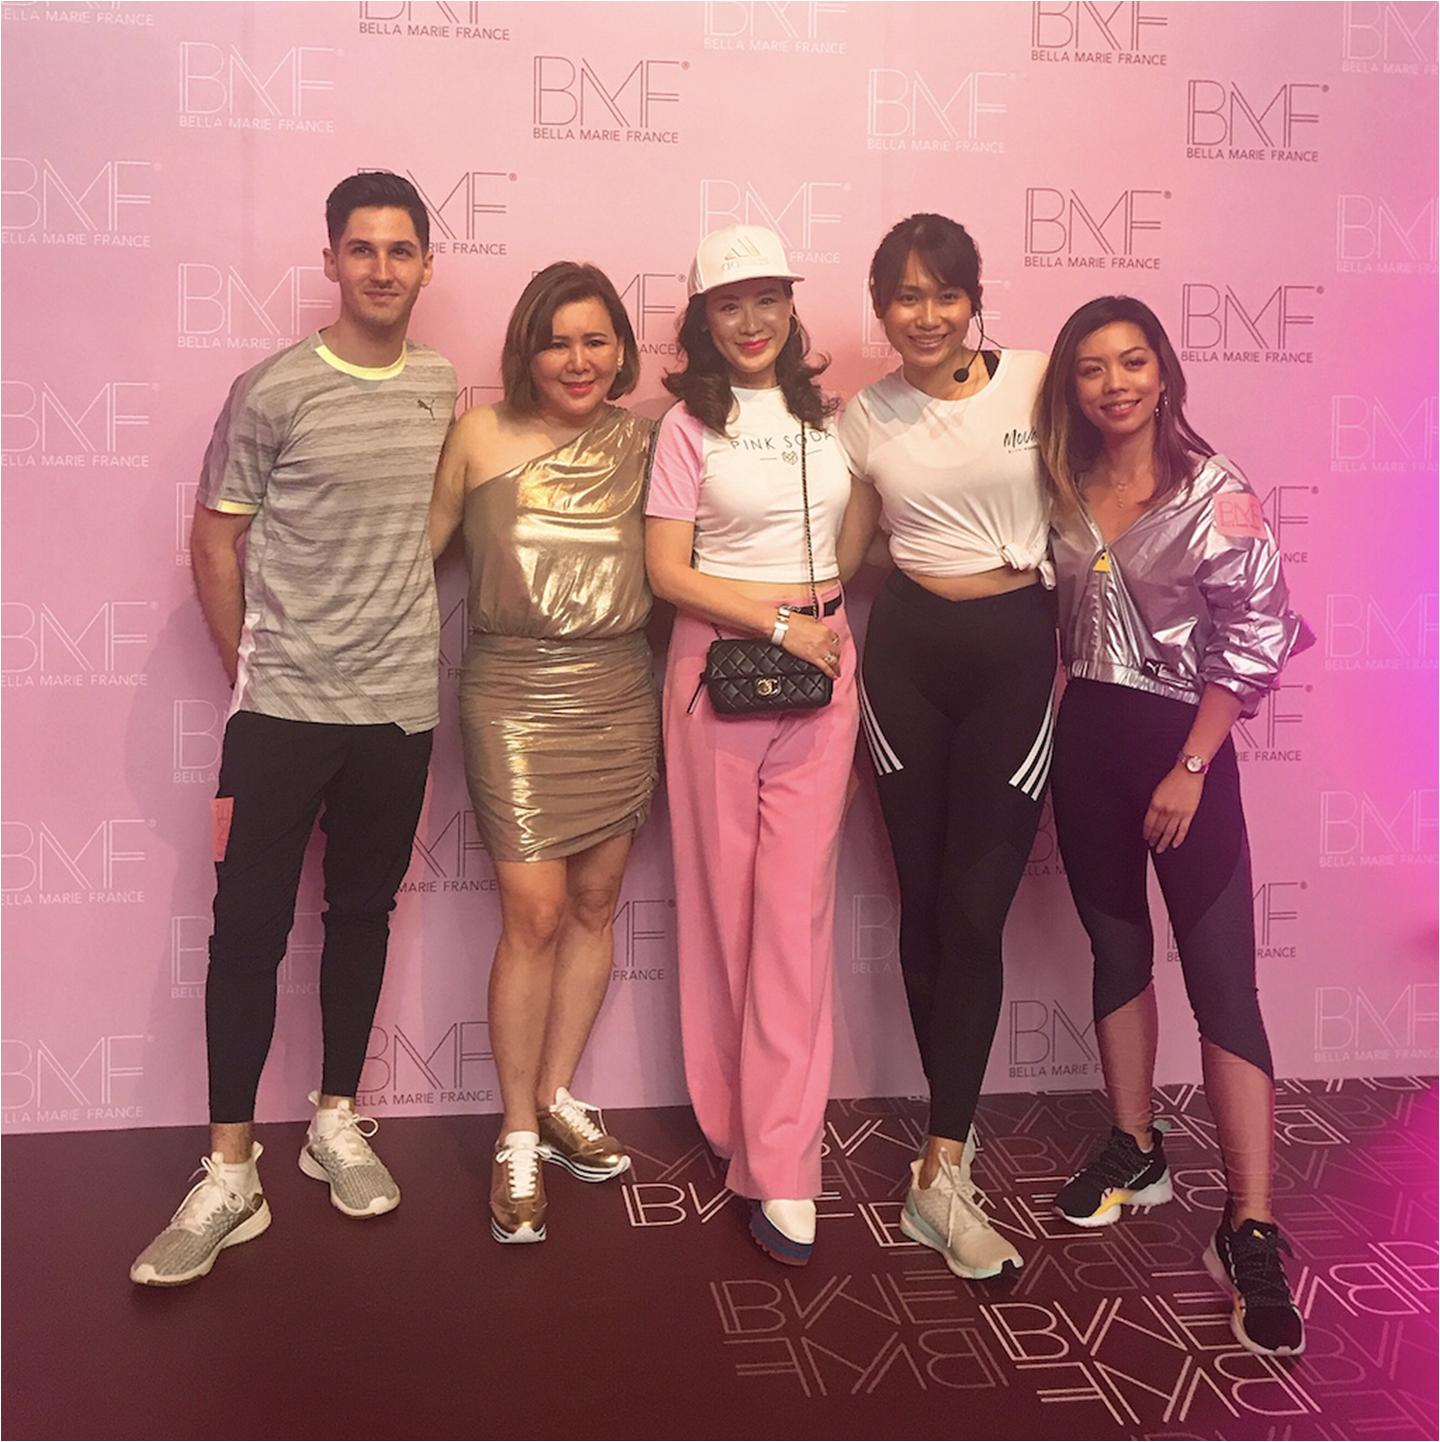 [Pamper.my] Scenes: BMF Bella Marie France Celebrates the Launch of its BMF Beauty Gym Flagship Store